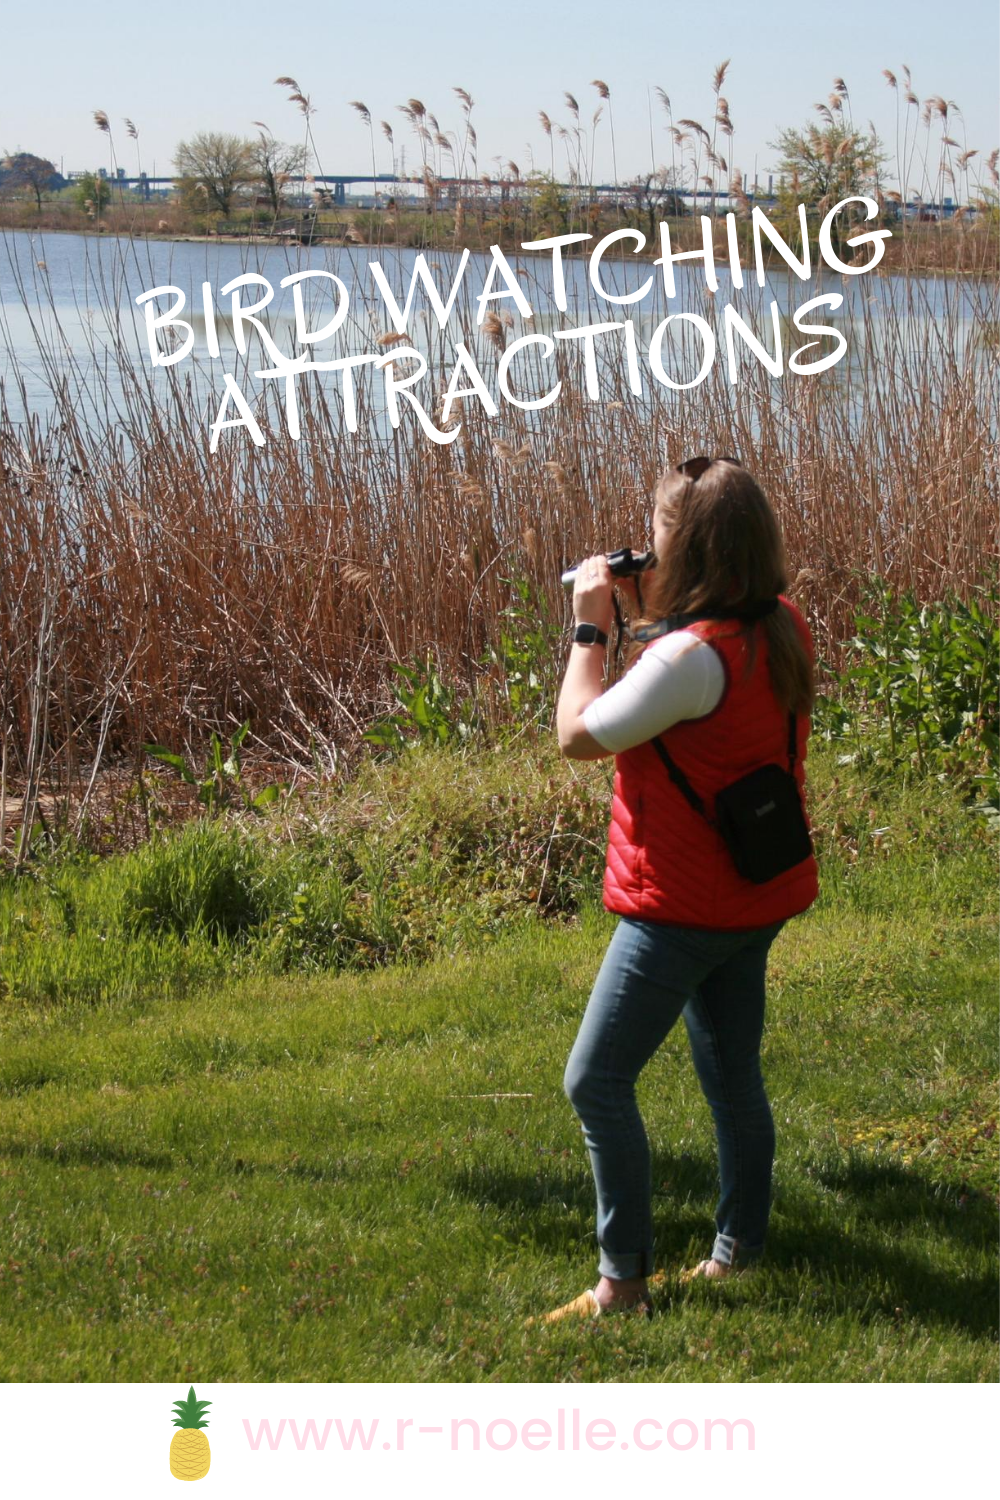 Bird Watching can be such an underrated activity. Northern New Jersey has so many different birds and there are so many beautiful nature spots for people to bring binoculars to get a better view. Check out this list of spots that are hidden gems in the garden state.